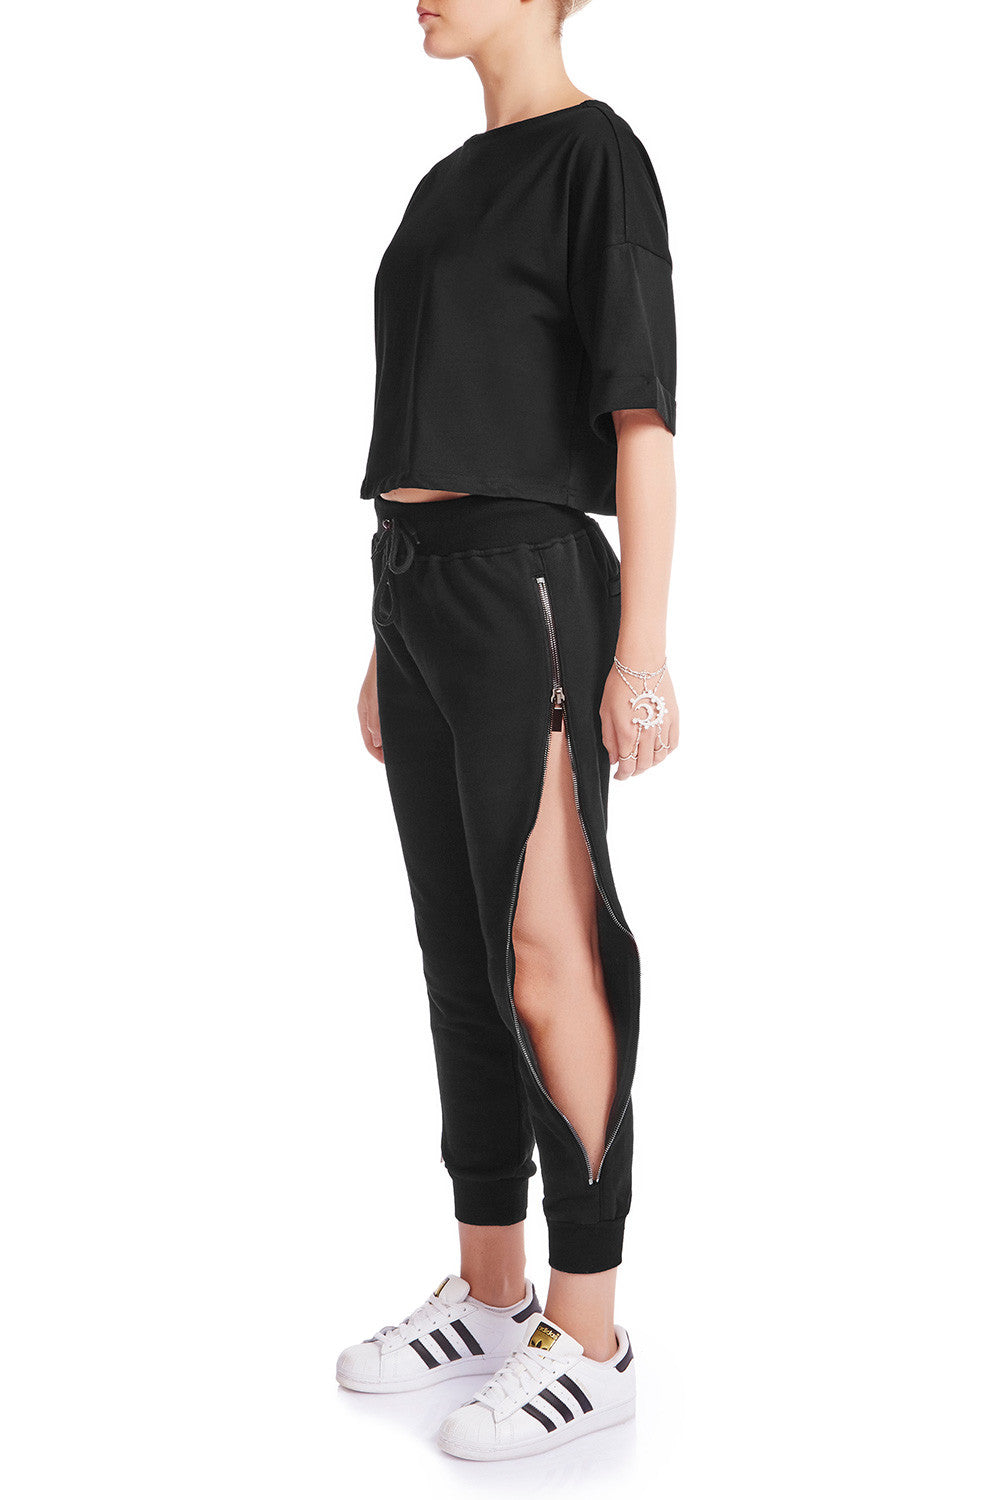 SLIDE AWAY Jogger Pants- EXLUSIVE BLK/BLK - HAUS OF SONG